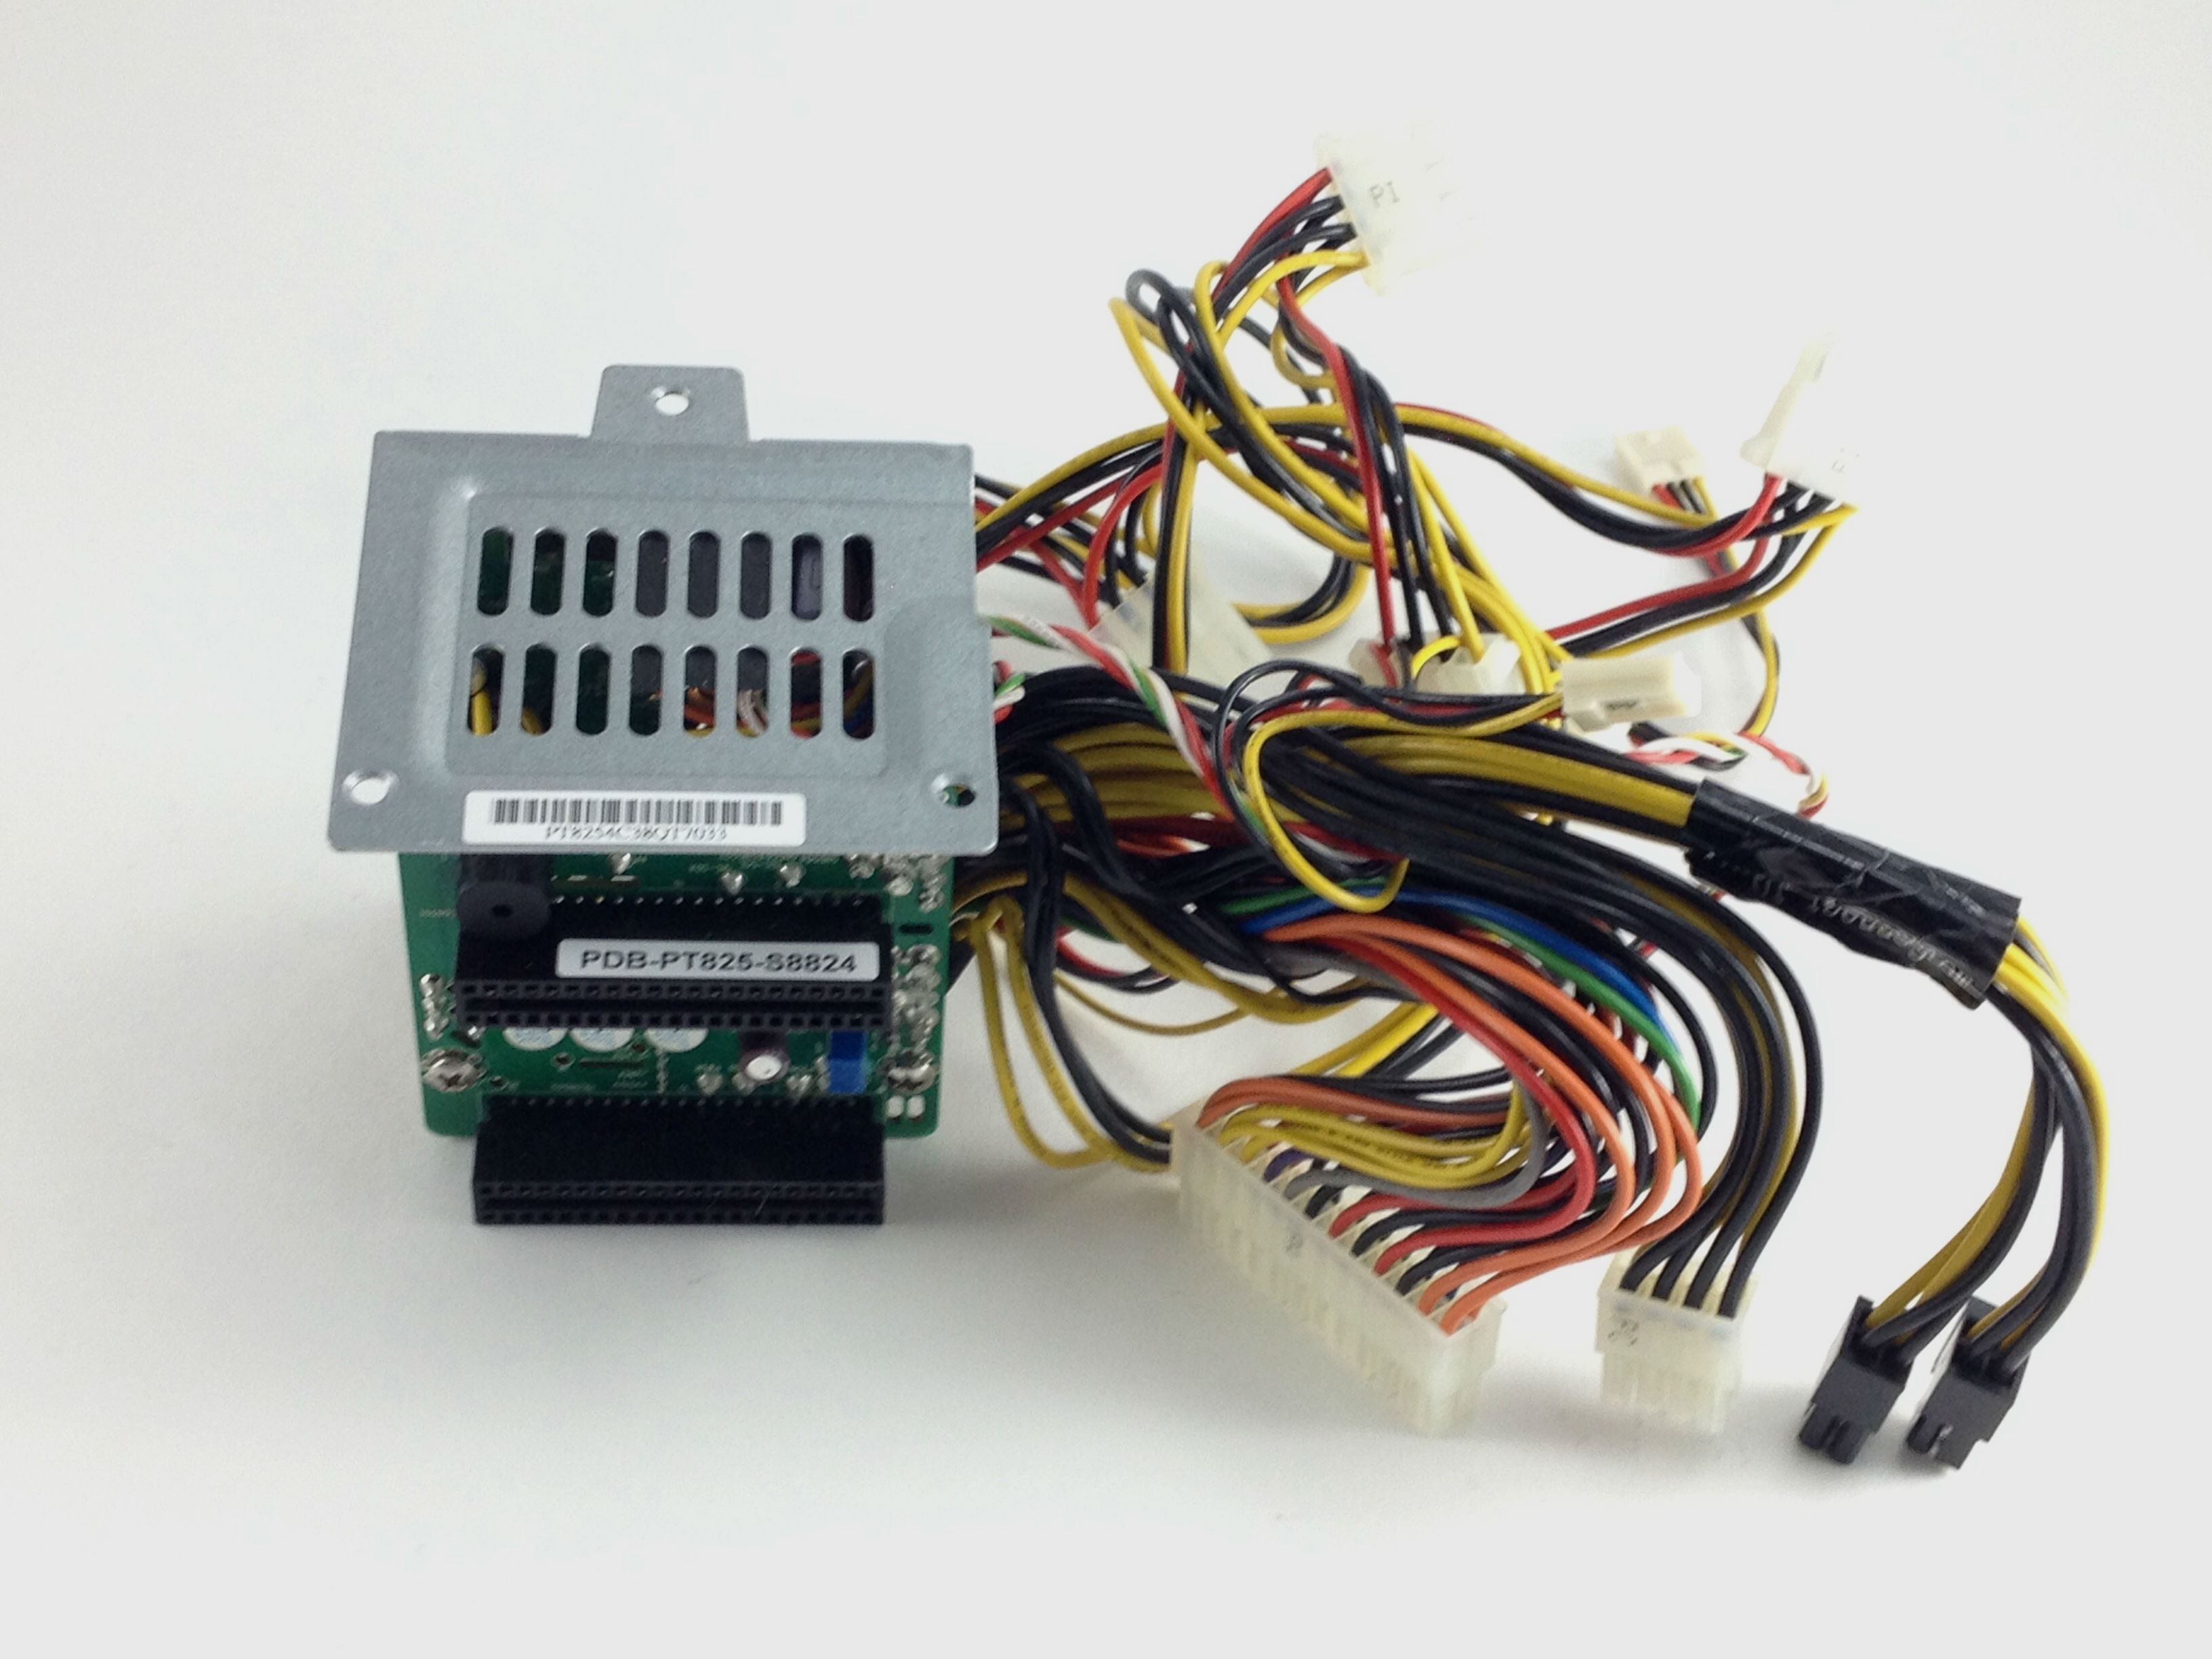 Supermicro 19 Pairs Power Distributor (PDB-PT825-S8824)